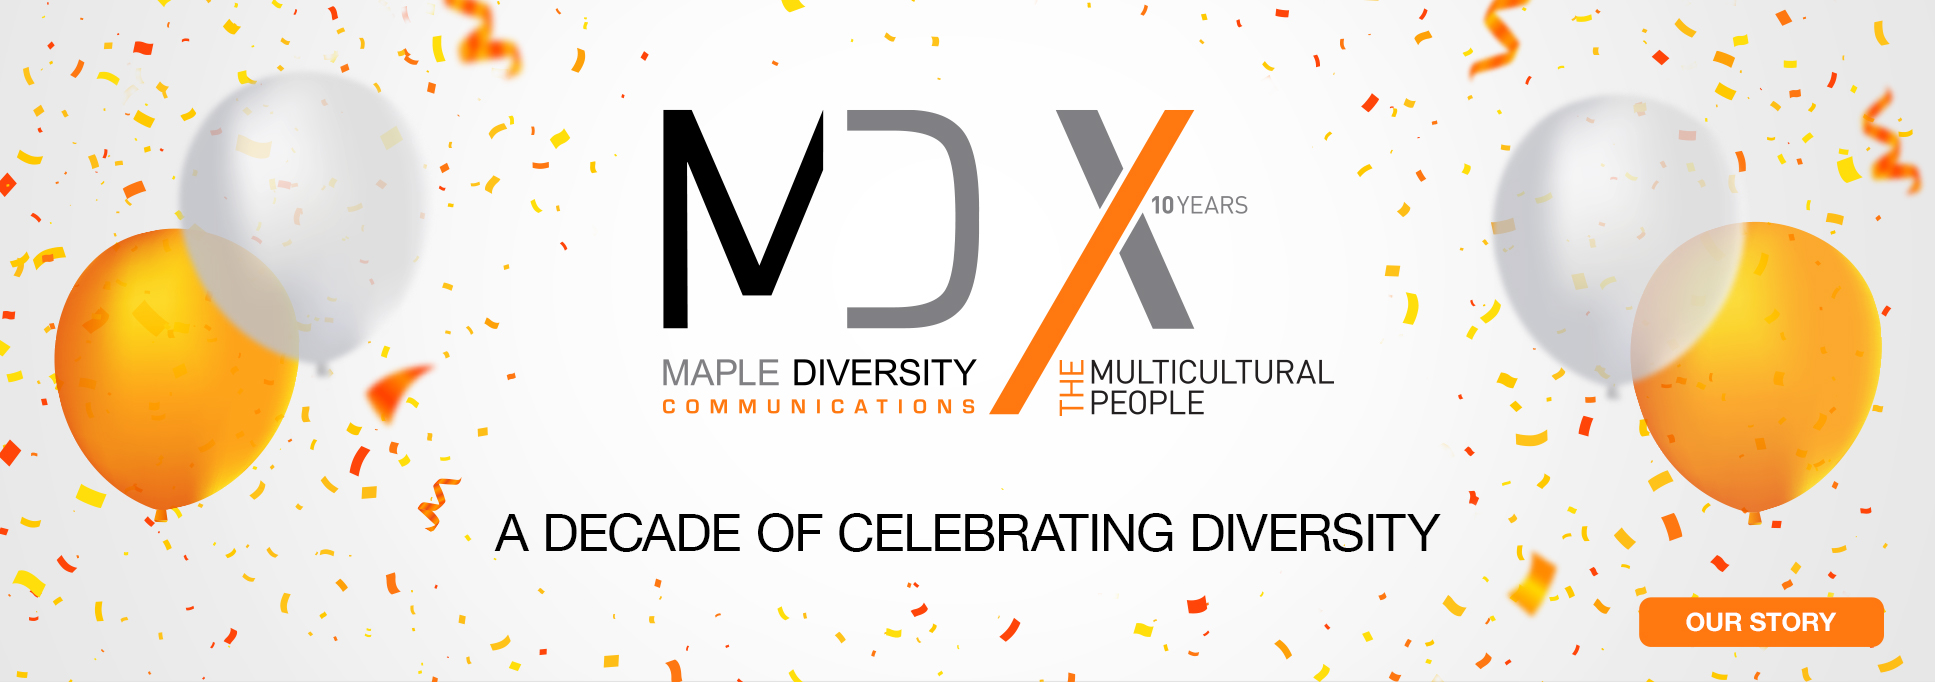 Happy 10th birthday Maple Diversity